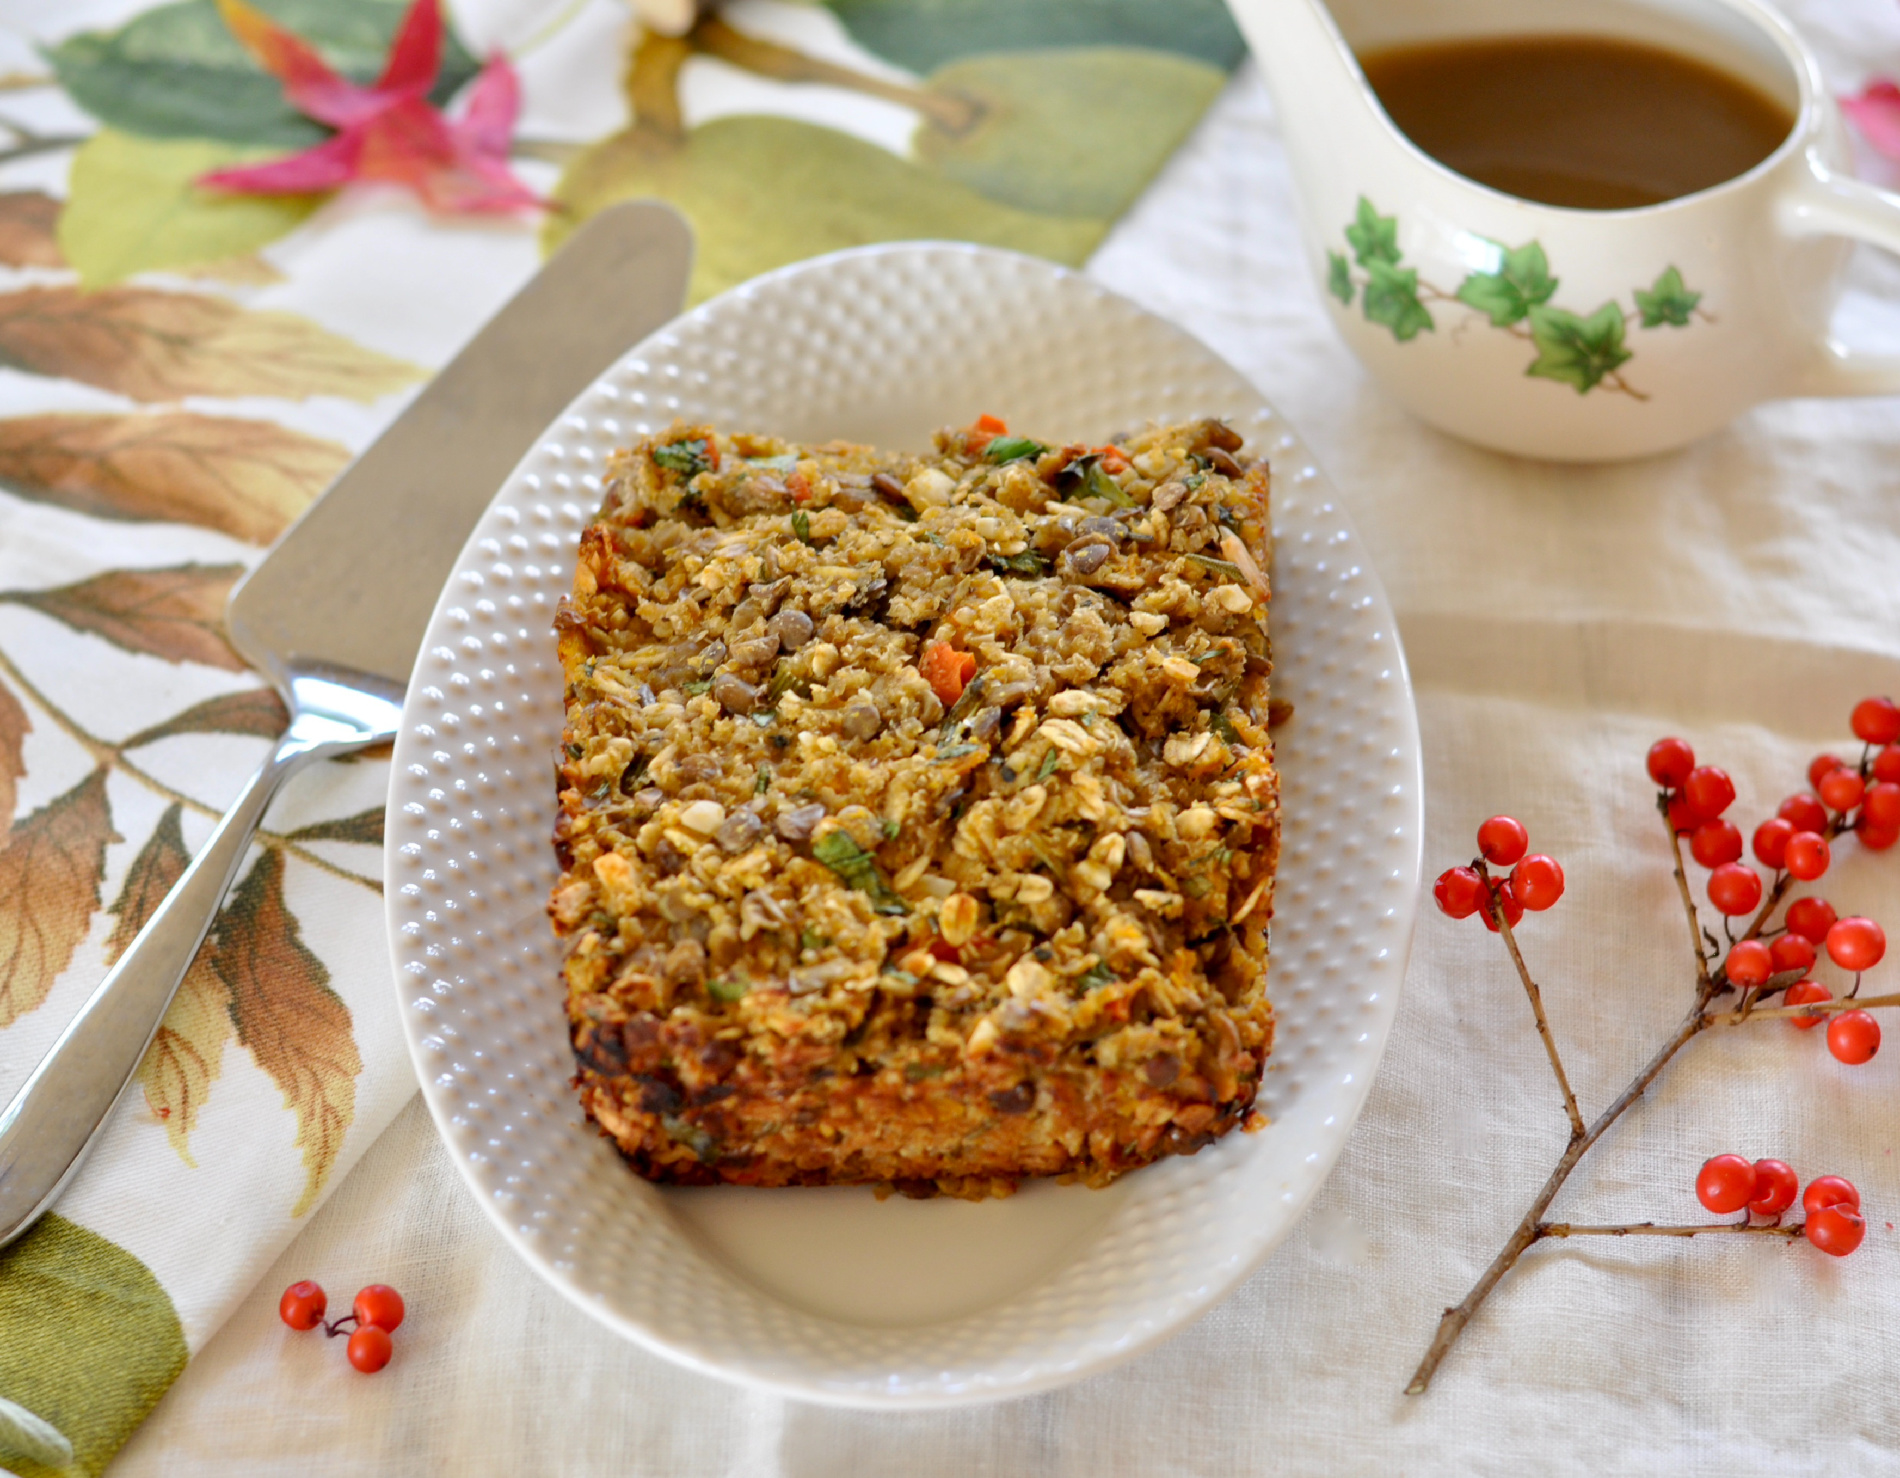 Hearty, comforting and packed with big savory flavors and aromatics, this vegan lentil loaf will become a family and holiday favorite. (#vegan) Ordinaryvegan.net